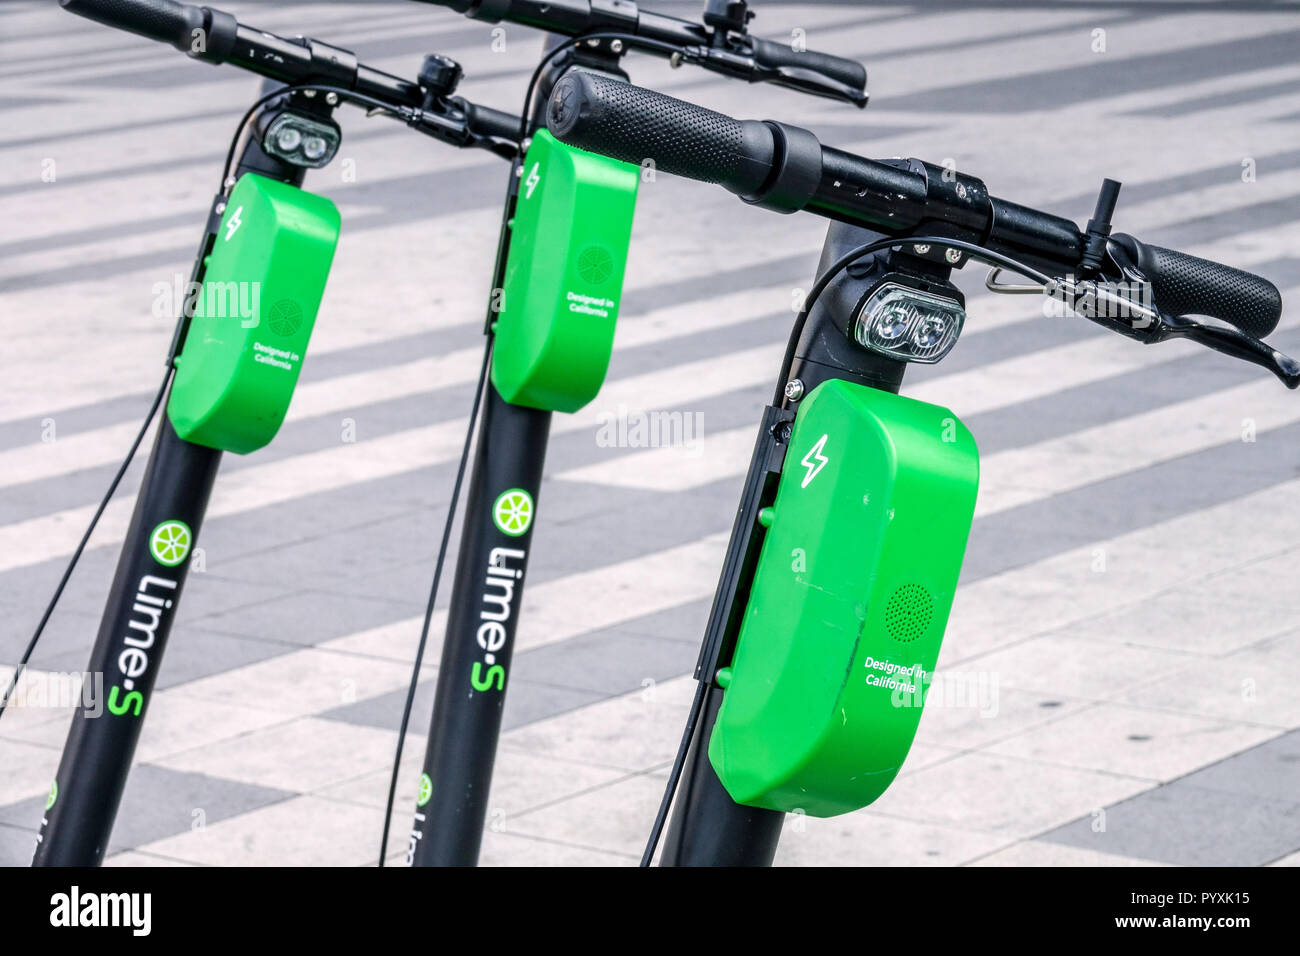 lime s electric scooter stock photos lime s electric. Black Bedroom Furniture Sets. Home Design Ideas